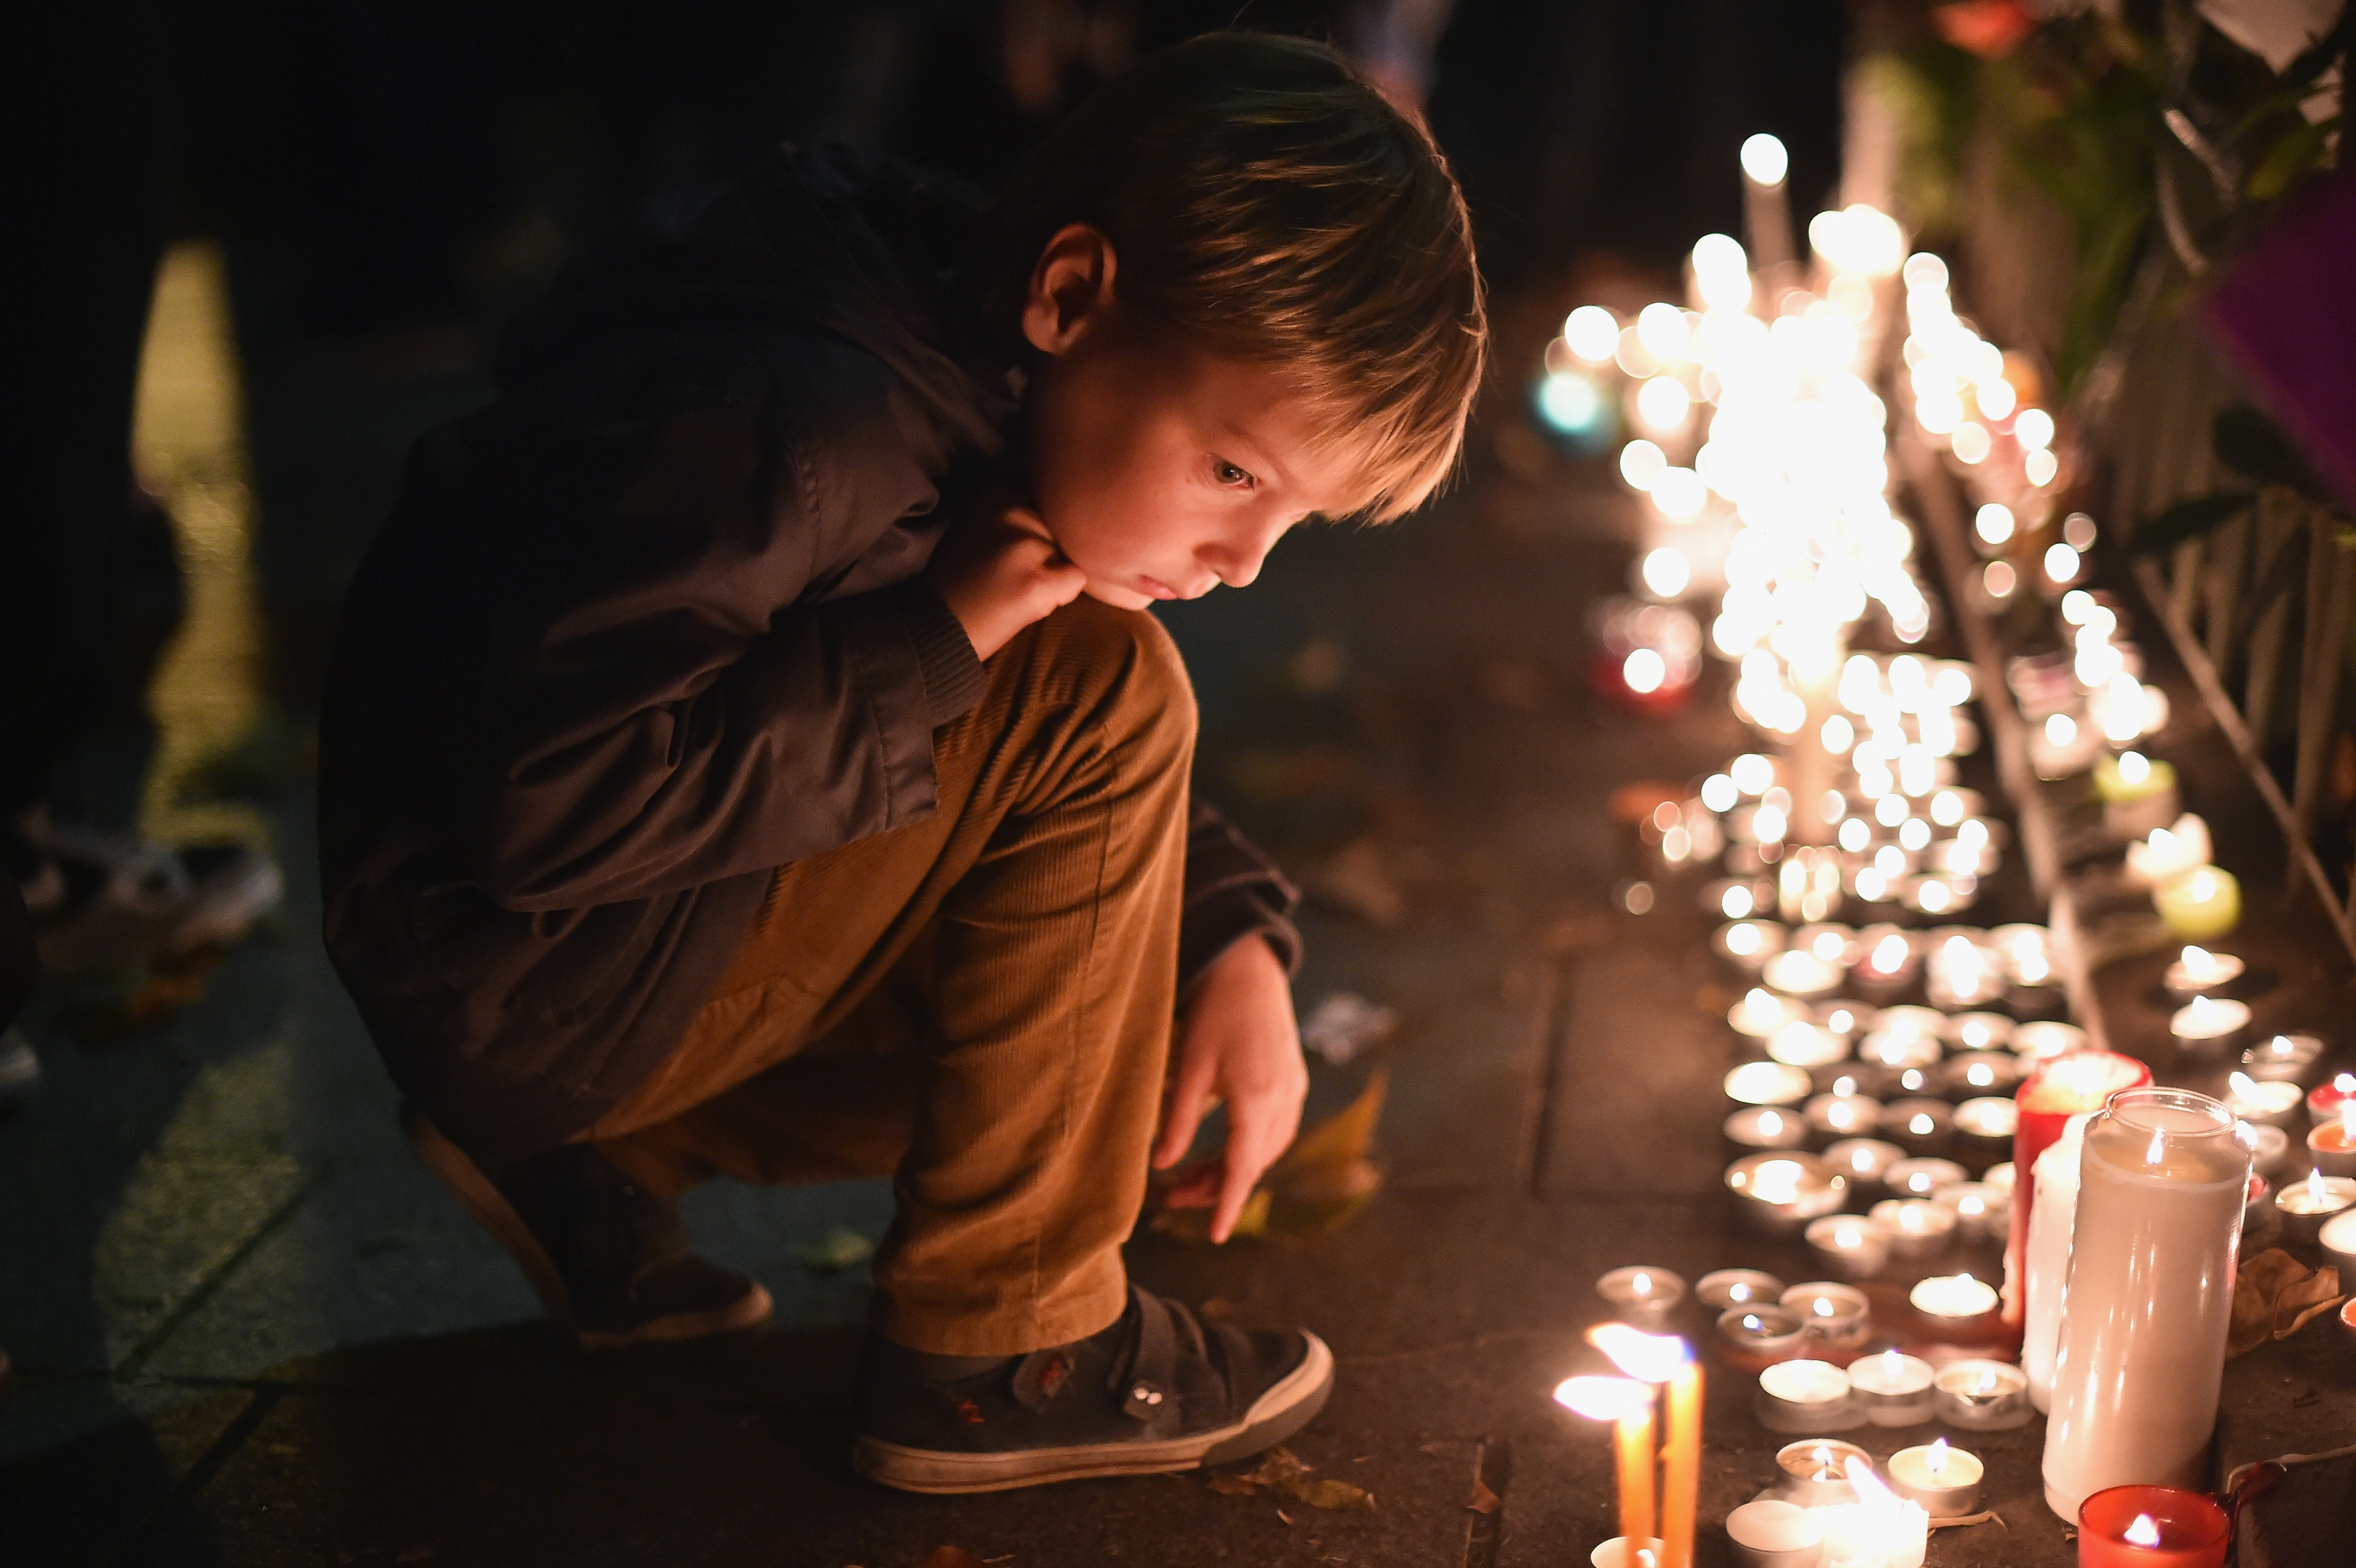 A young boy views tributes following terrorist attacks in Paris, on Nov. 16, 2015.